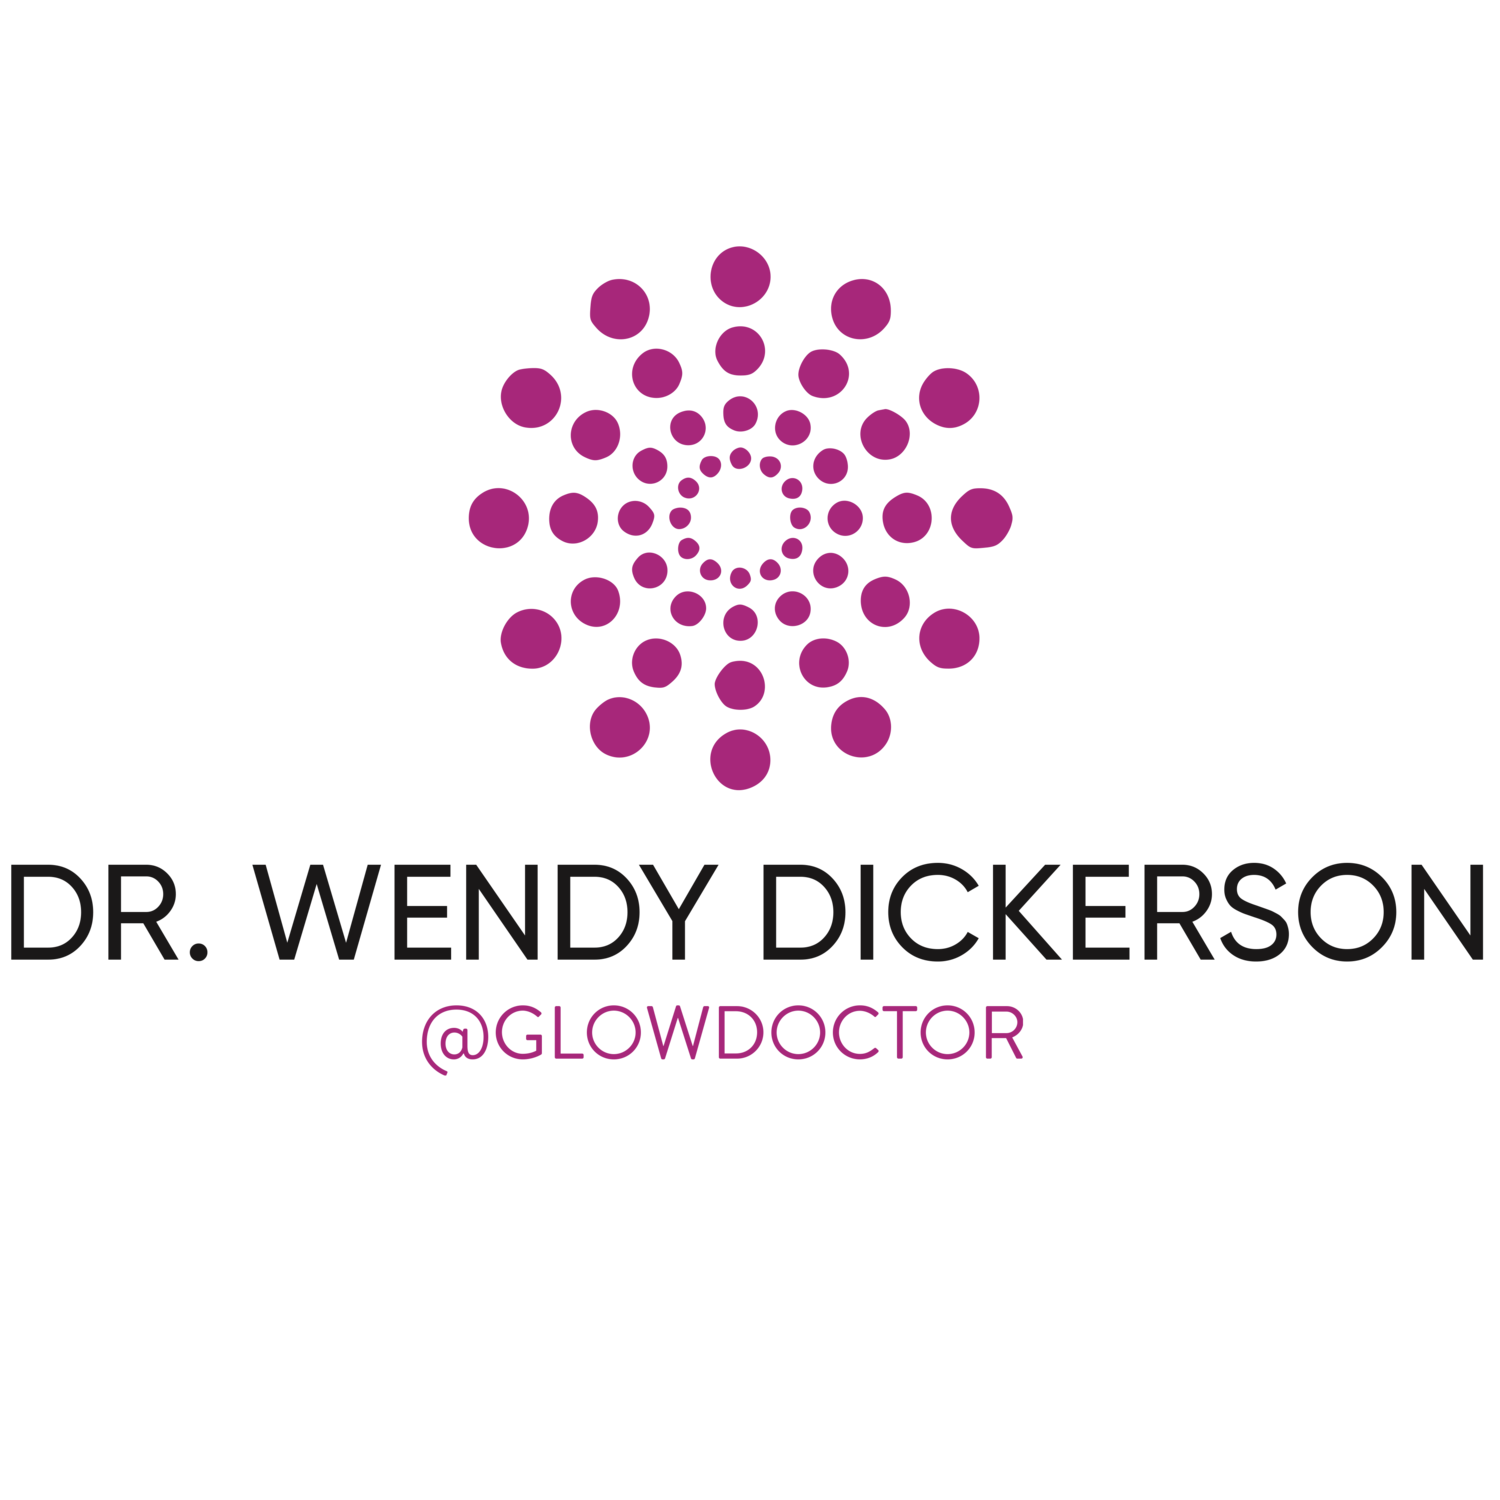 Dr. Wendy Dickerson